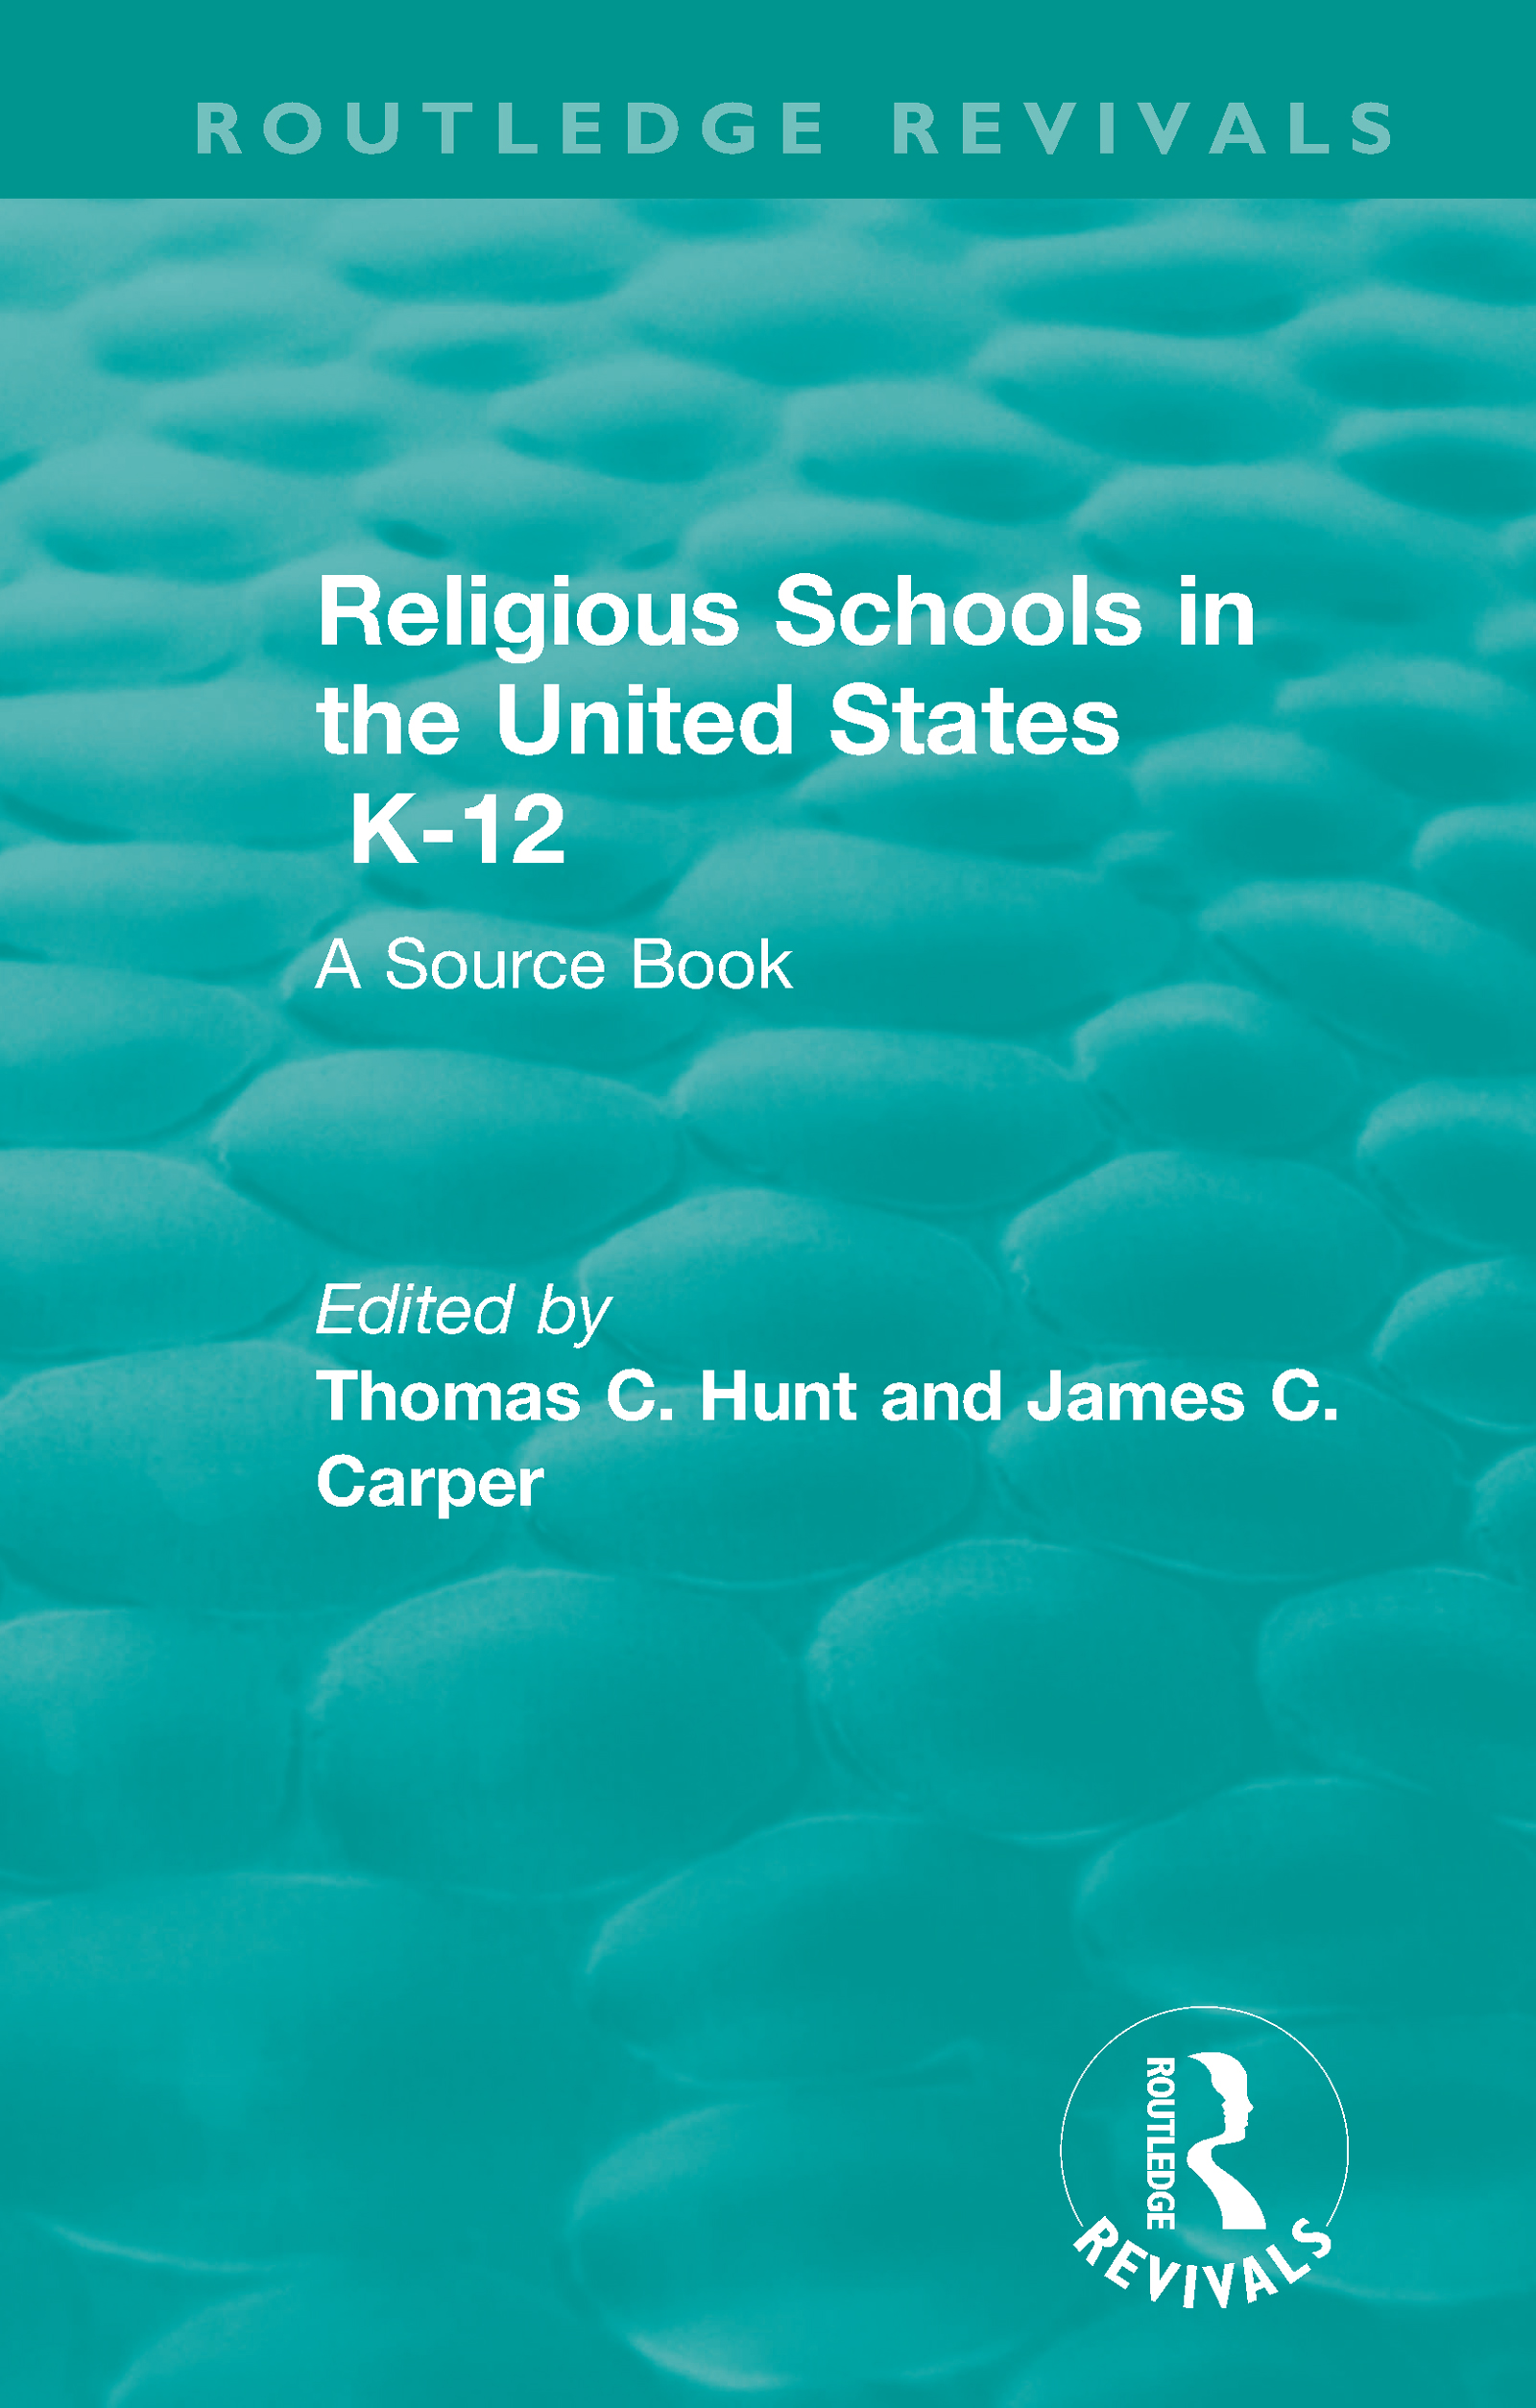 Religious Schools in the United States K-12 (1993): A Source Book book cover